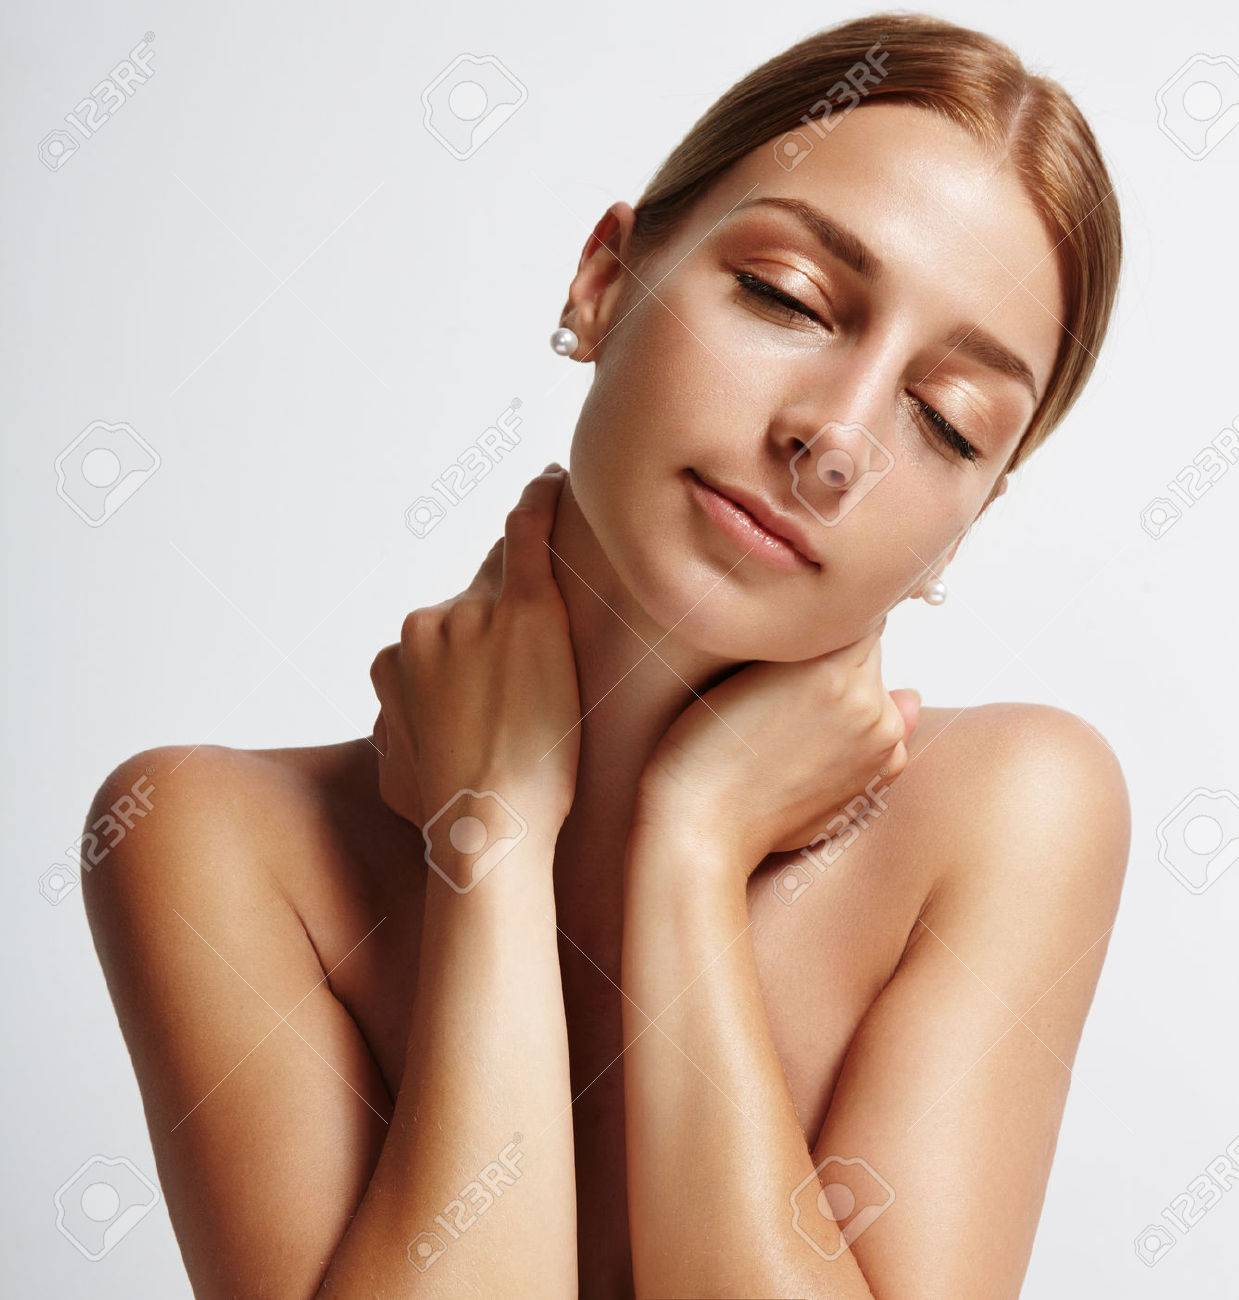 happy woman with closed eyes - 34674894